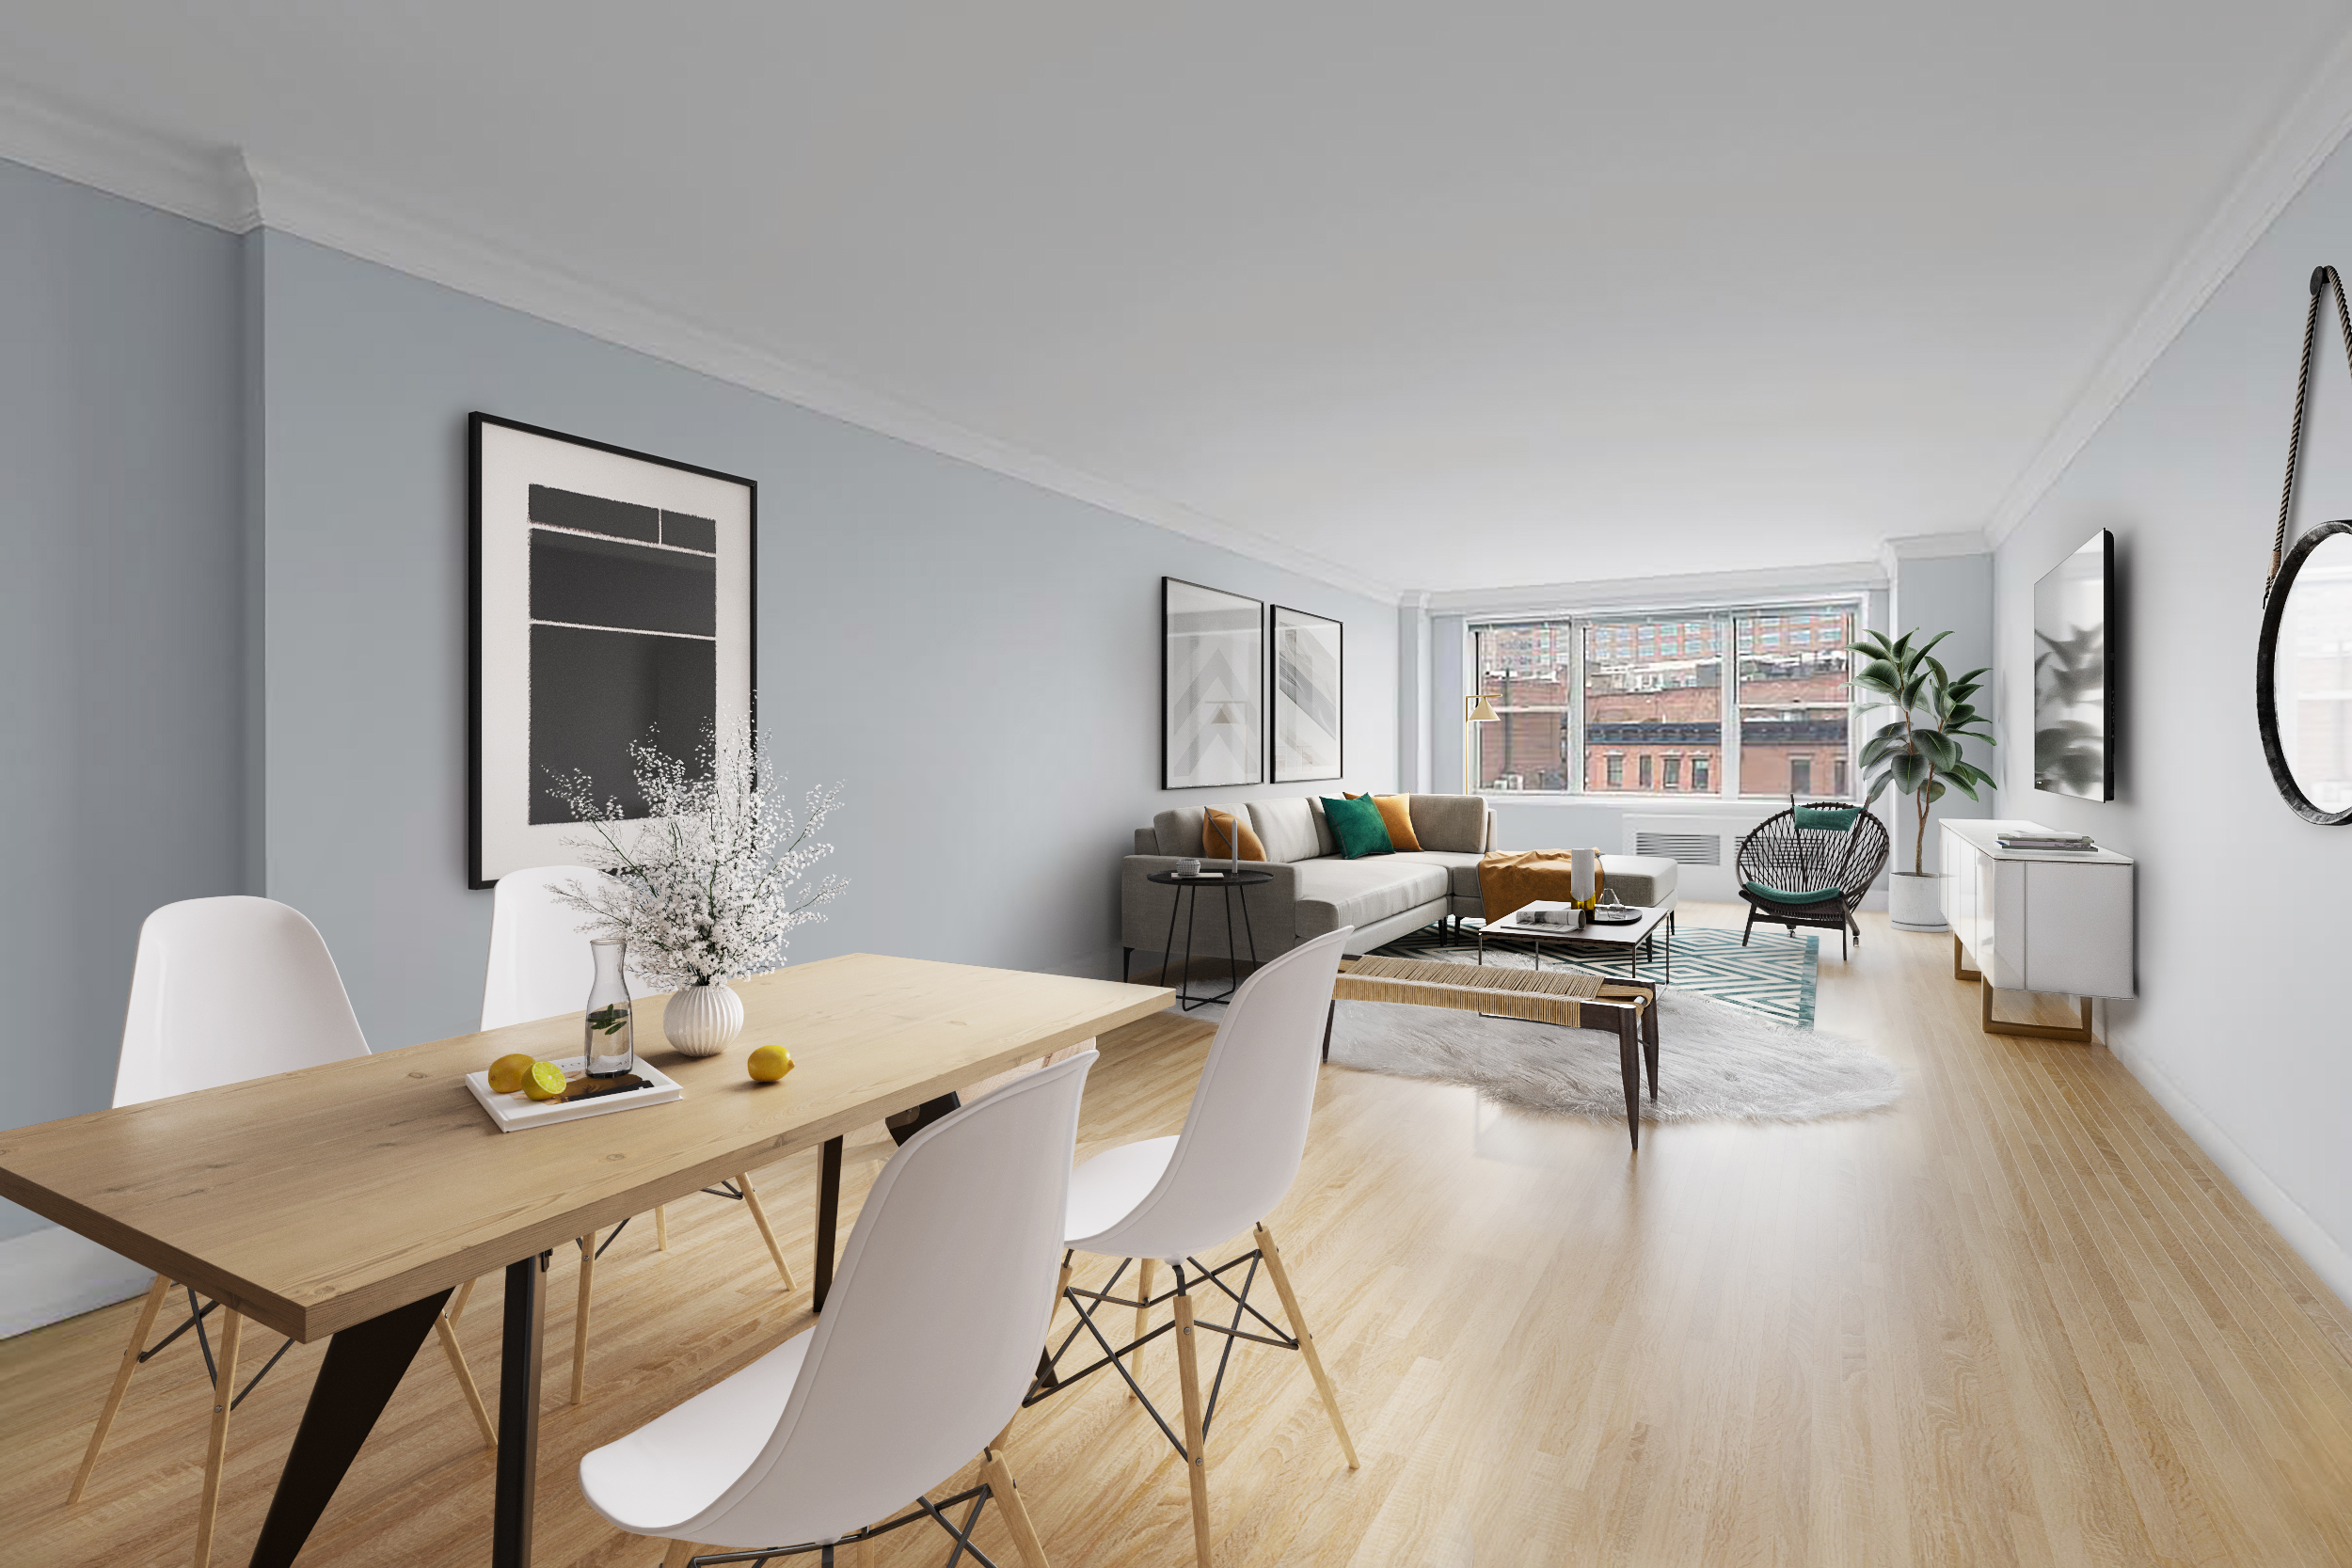 Andrew_14 Horatio St_#6H_Living_dining_staged_IK_corrected.jpg